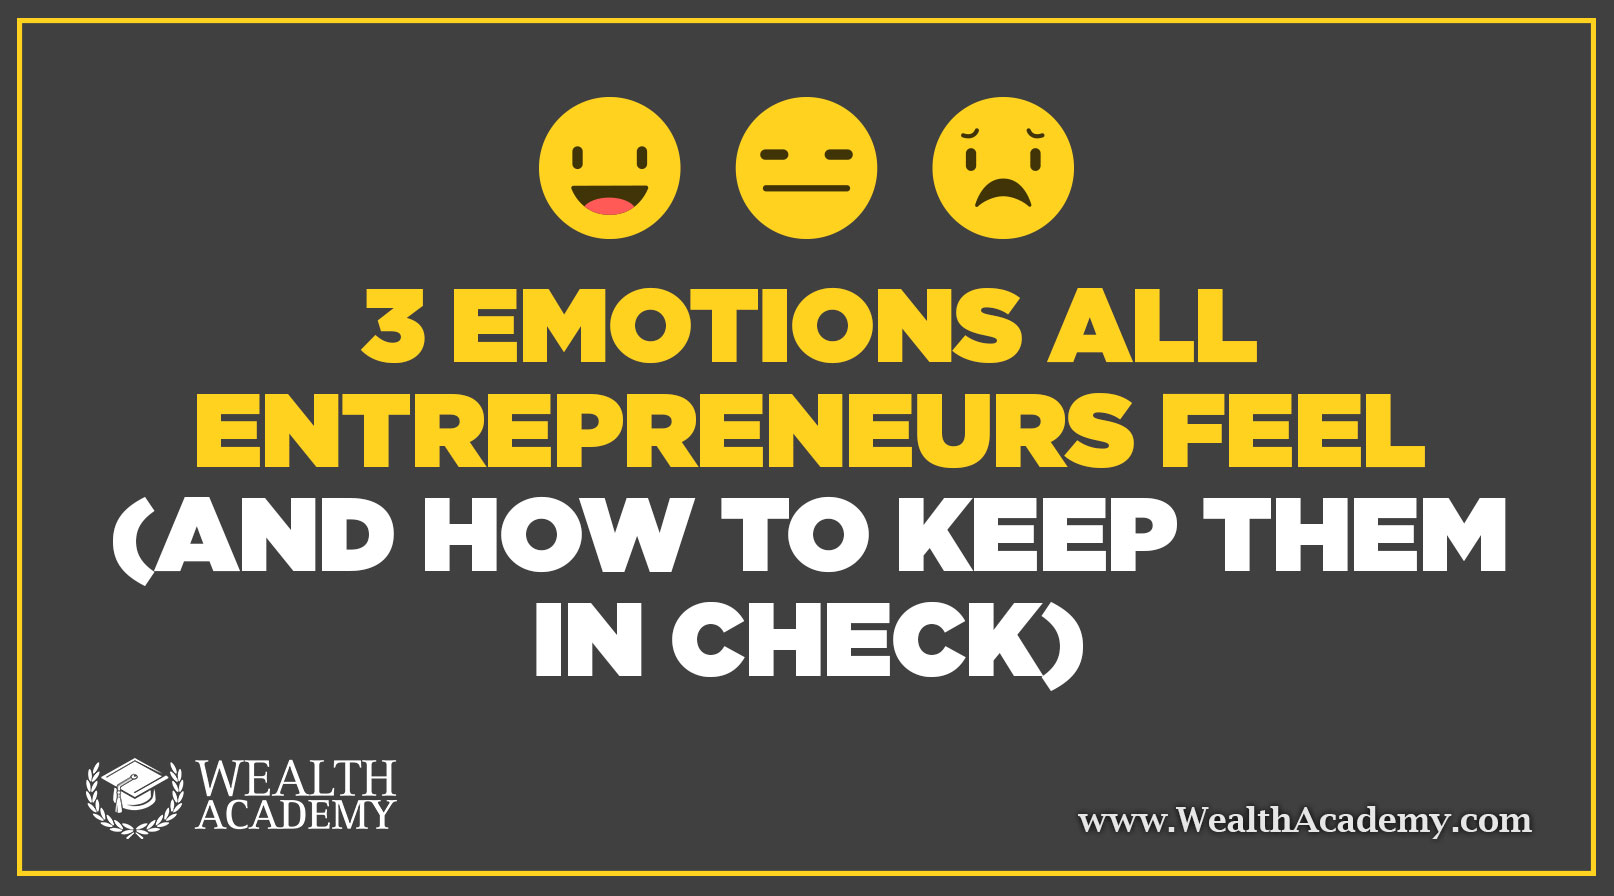 3-Emotions-All-Entrepreneurs-Feel-(and-How-to-Keep-Them-in-Check)-WA-BLOG-POST